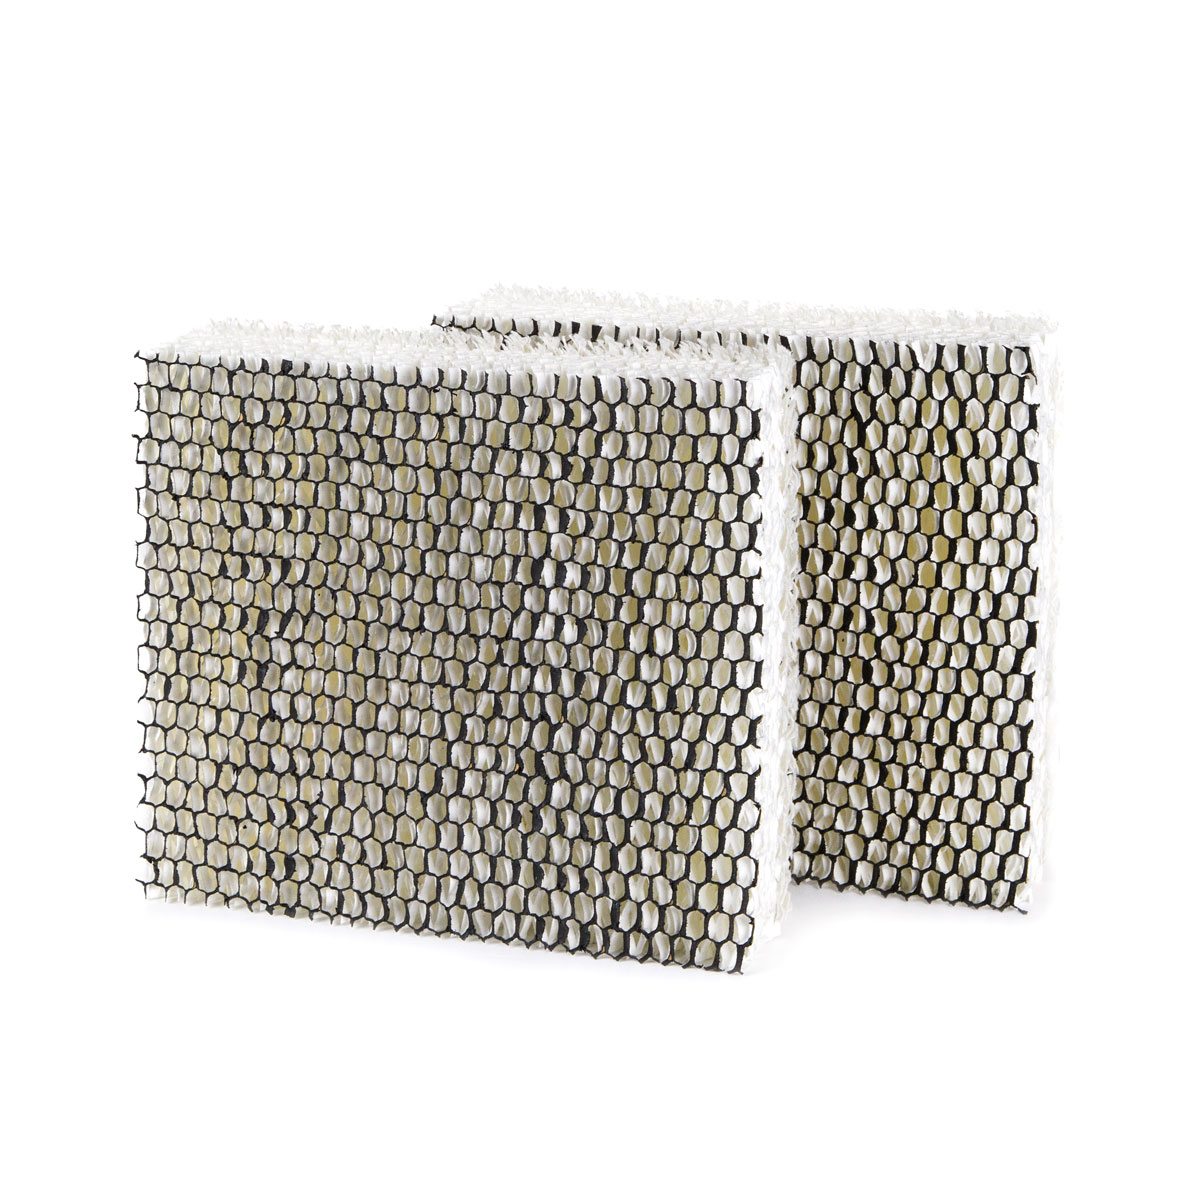 Bionaire® Humidifier Replacement Filters